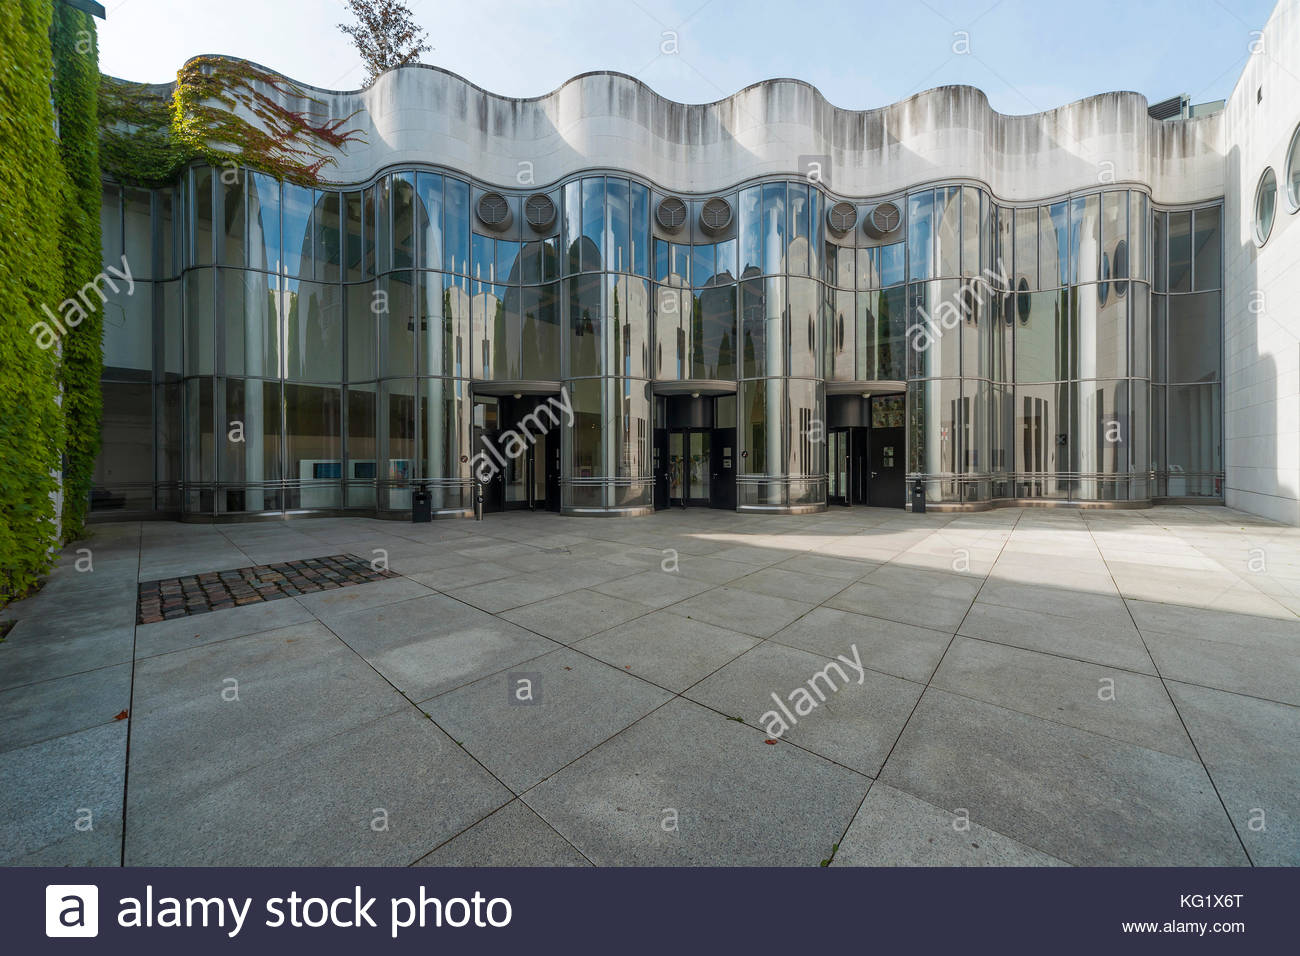 Bundeskunsthalle The Rhineland, Bundeskunsthalle Stock Photos & Bundeskunsthalle Stock Images - Alamy